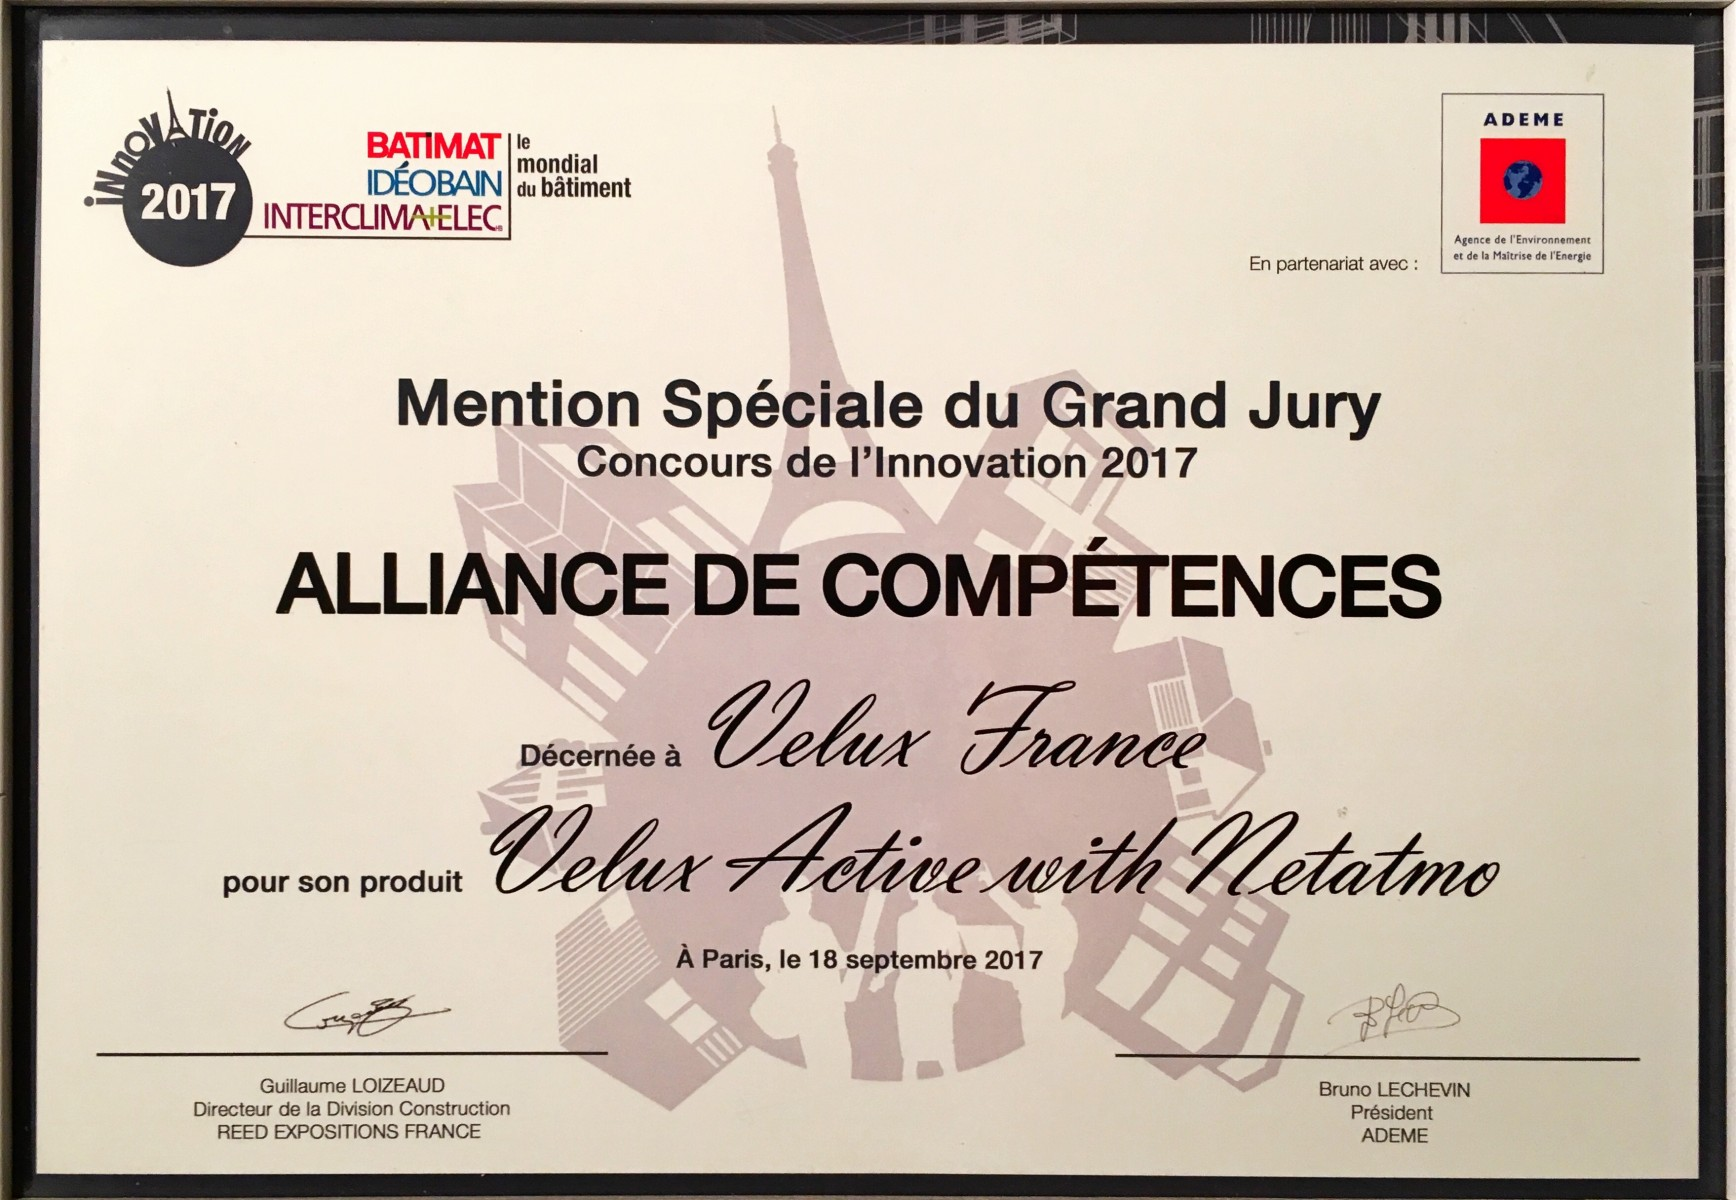 BatimatmentionSpécialeduGrandJury